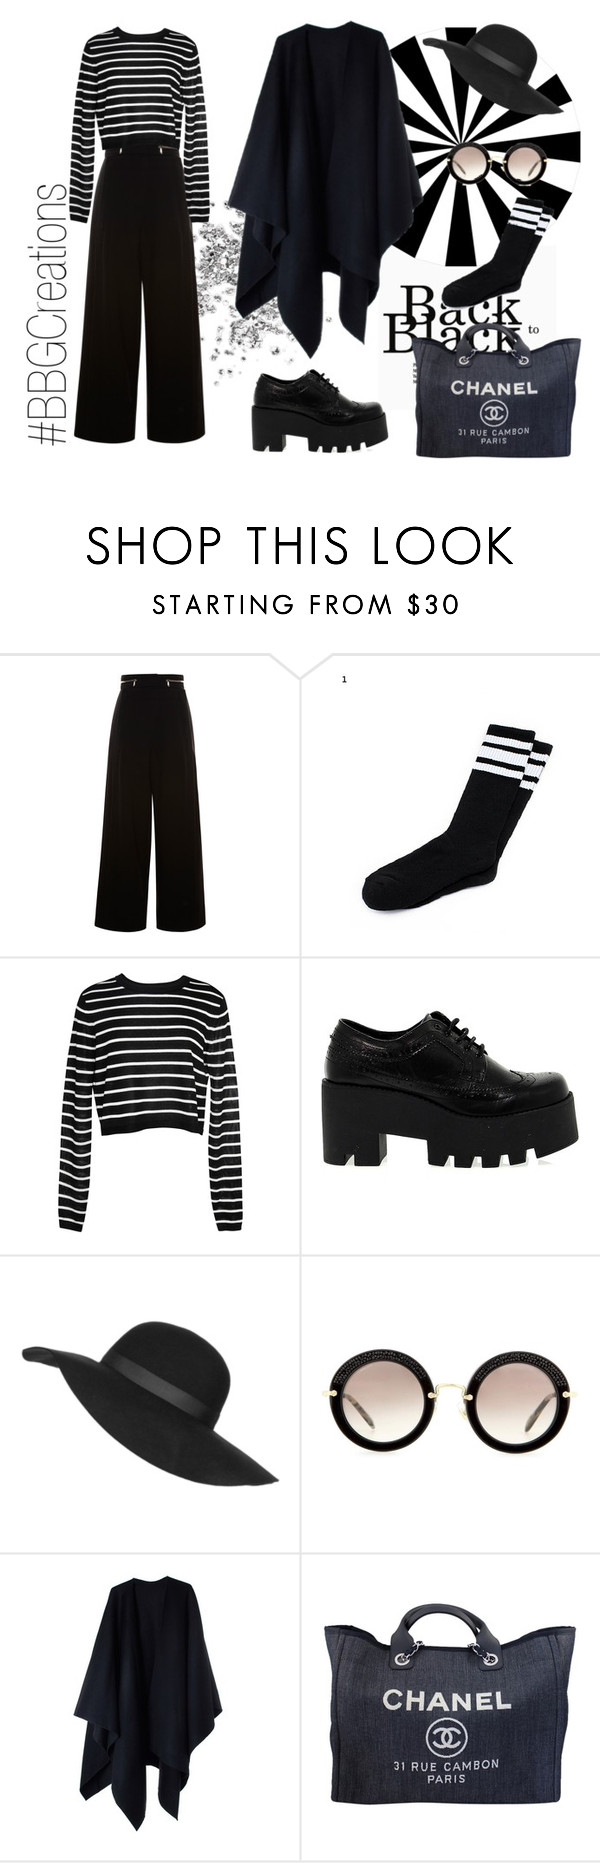 """""""Back in Black"""" by bigblueglasses on Polyvore featuring Proenza Schouler, TIBI, Windsor Smith, Topshop, Miu Miu, Acne Studios, Chanel, women's clothing, women and female"""